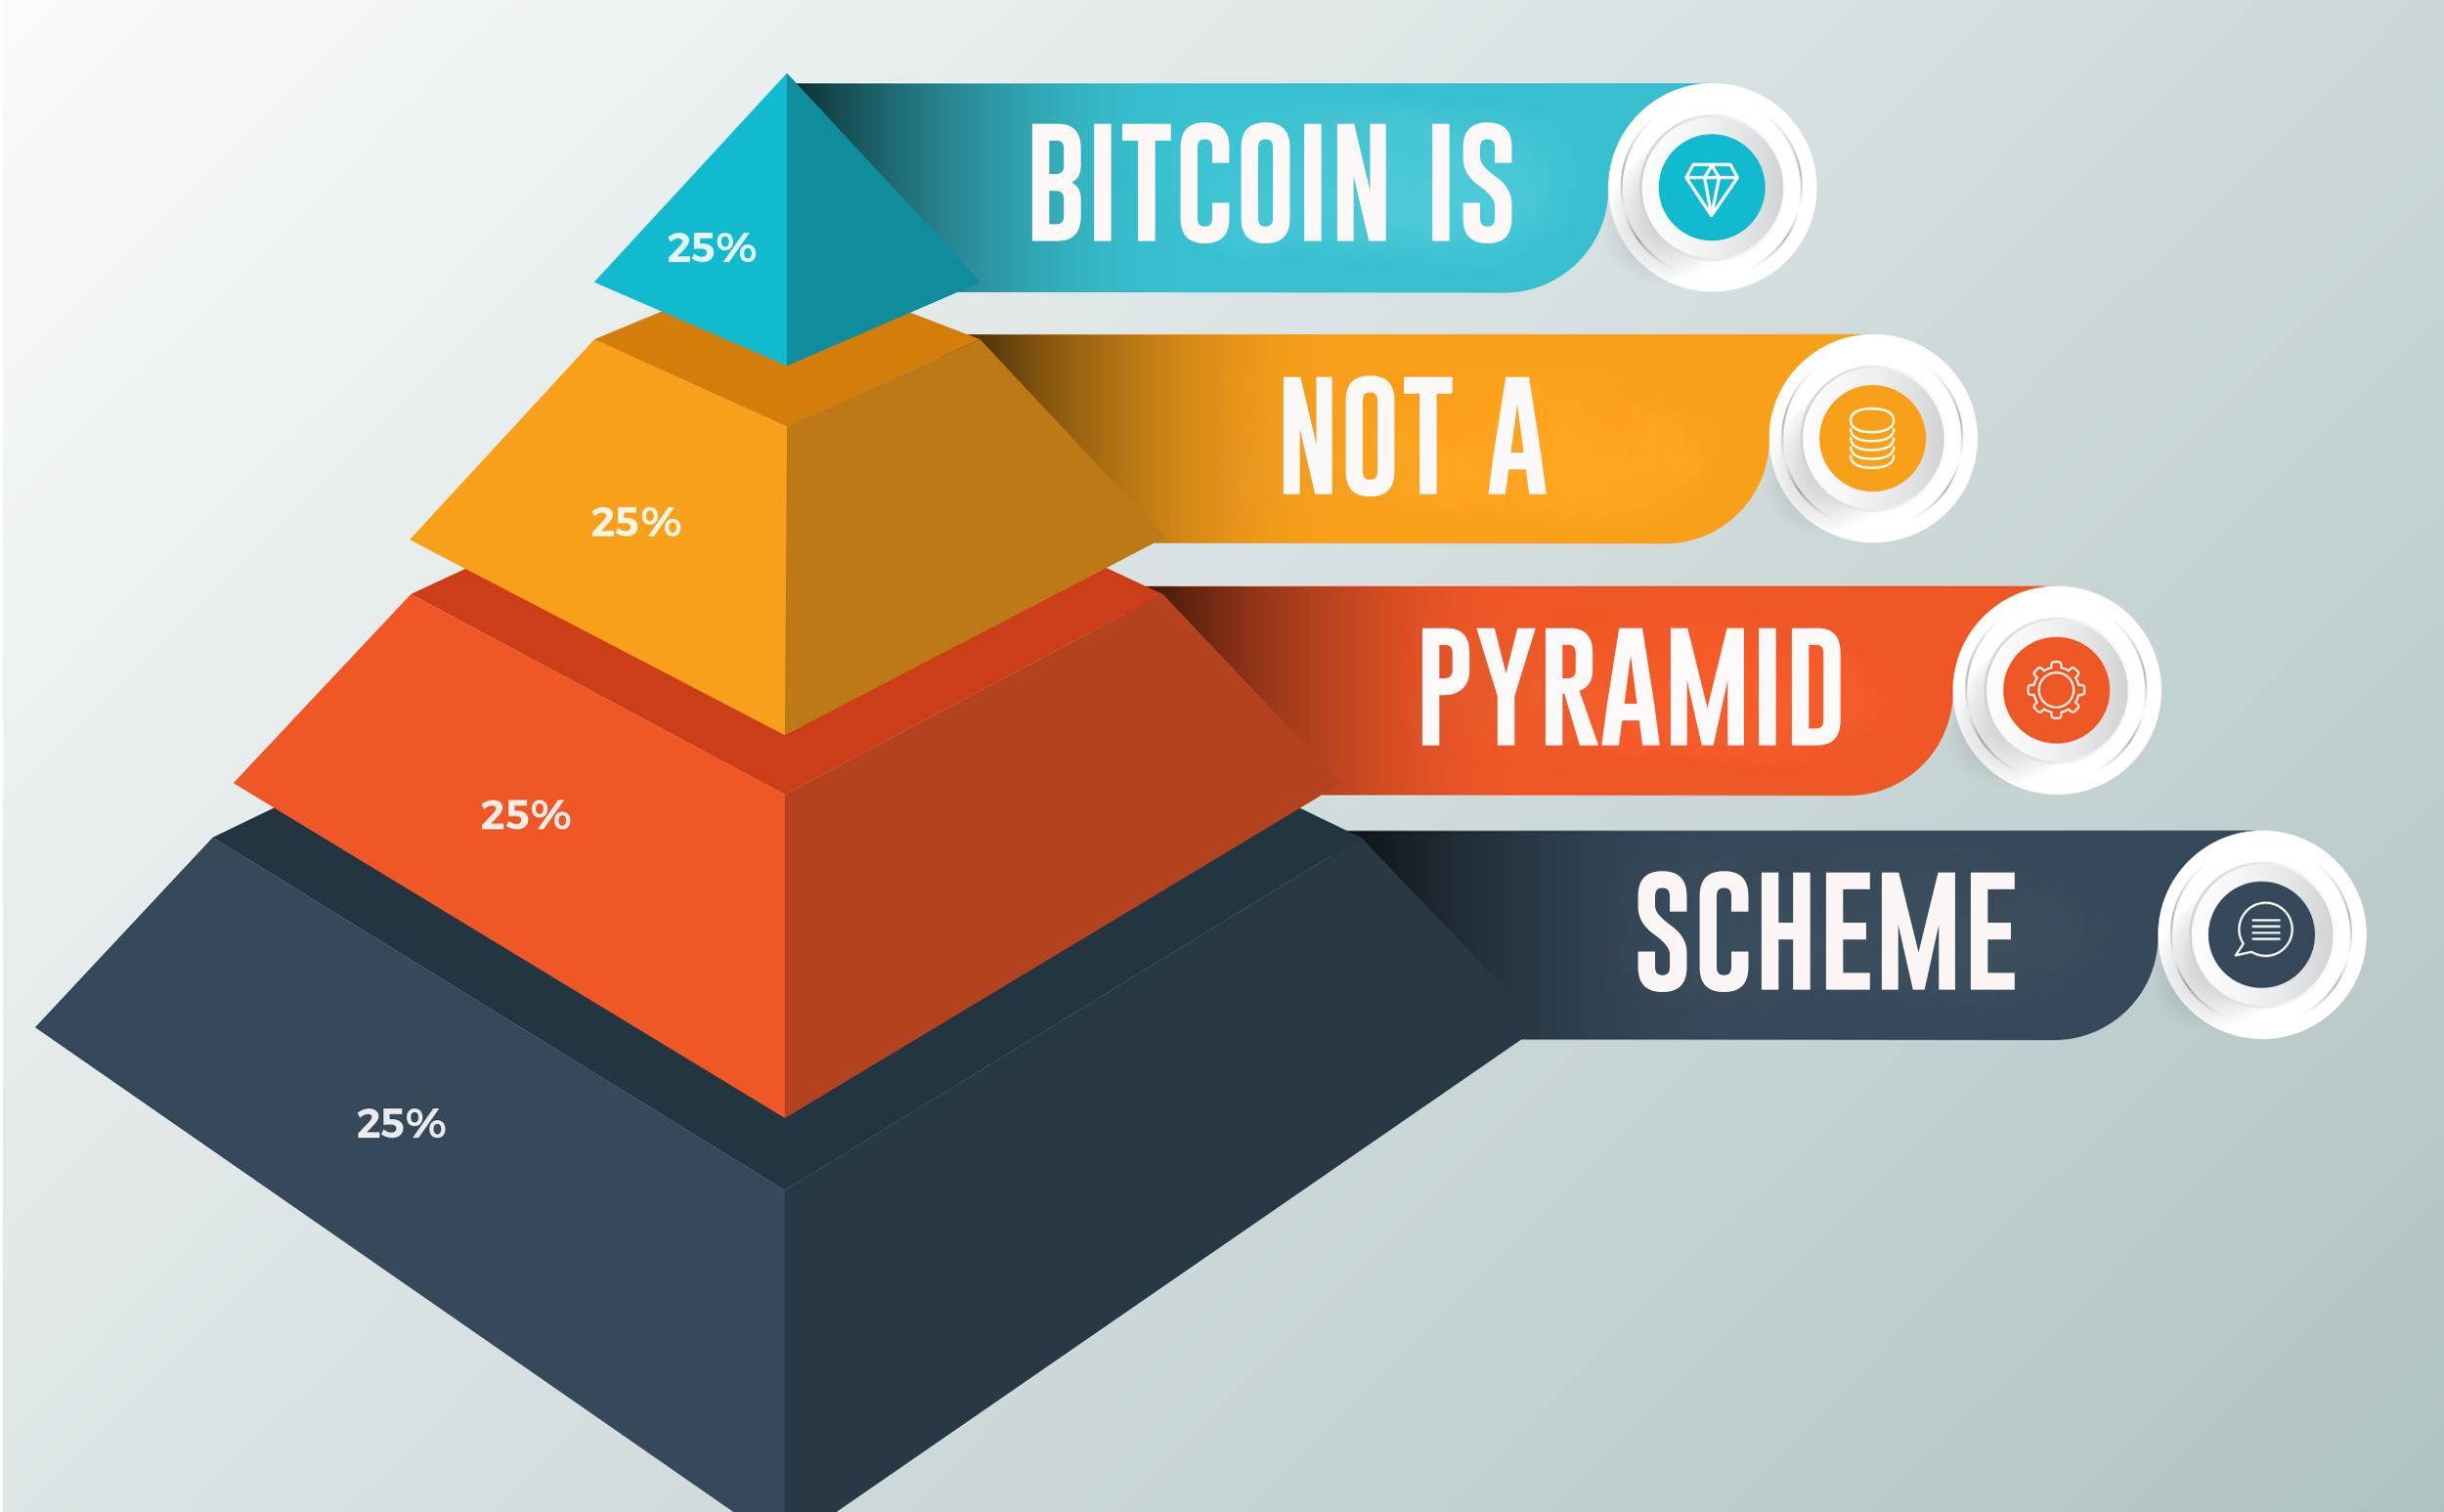 Bitcoin is Not a Pyramid Scheme